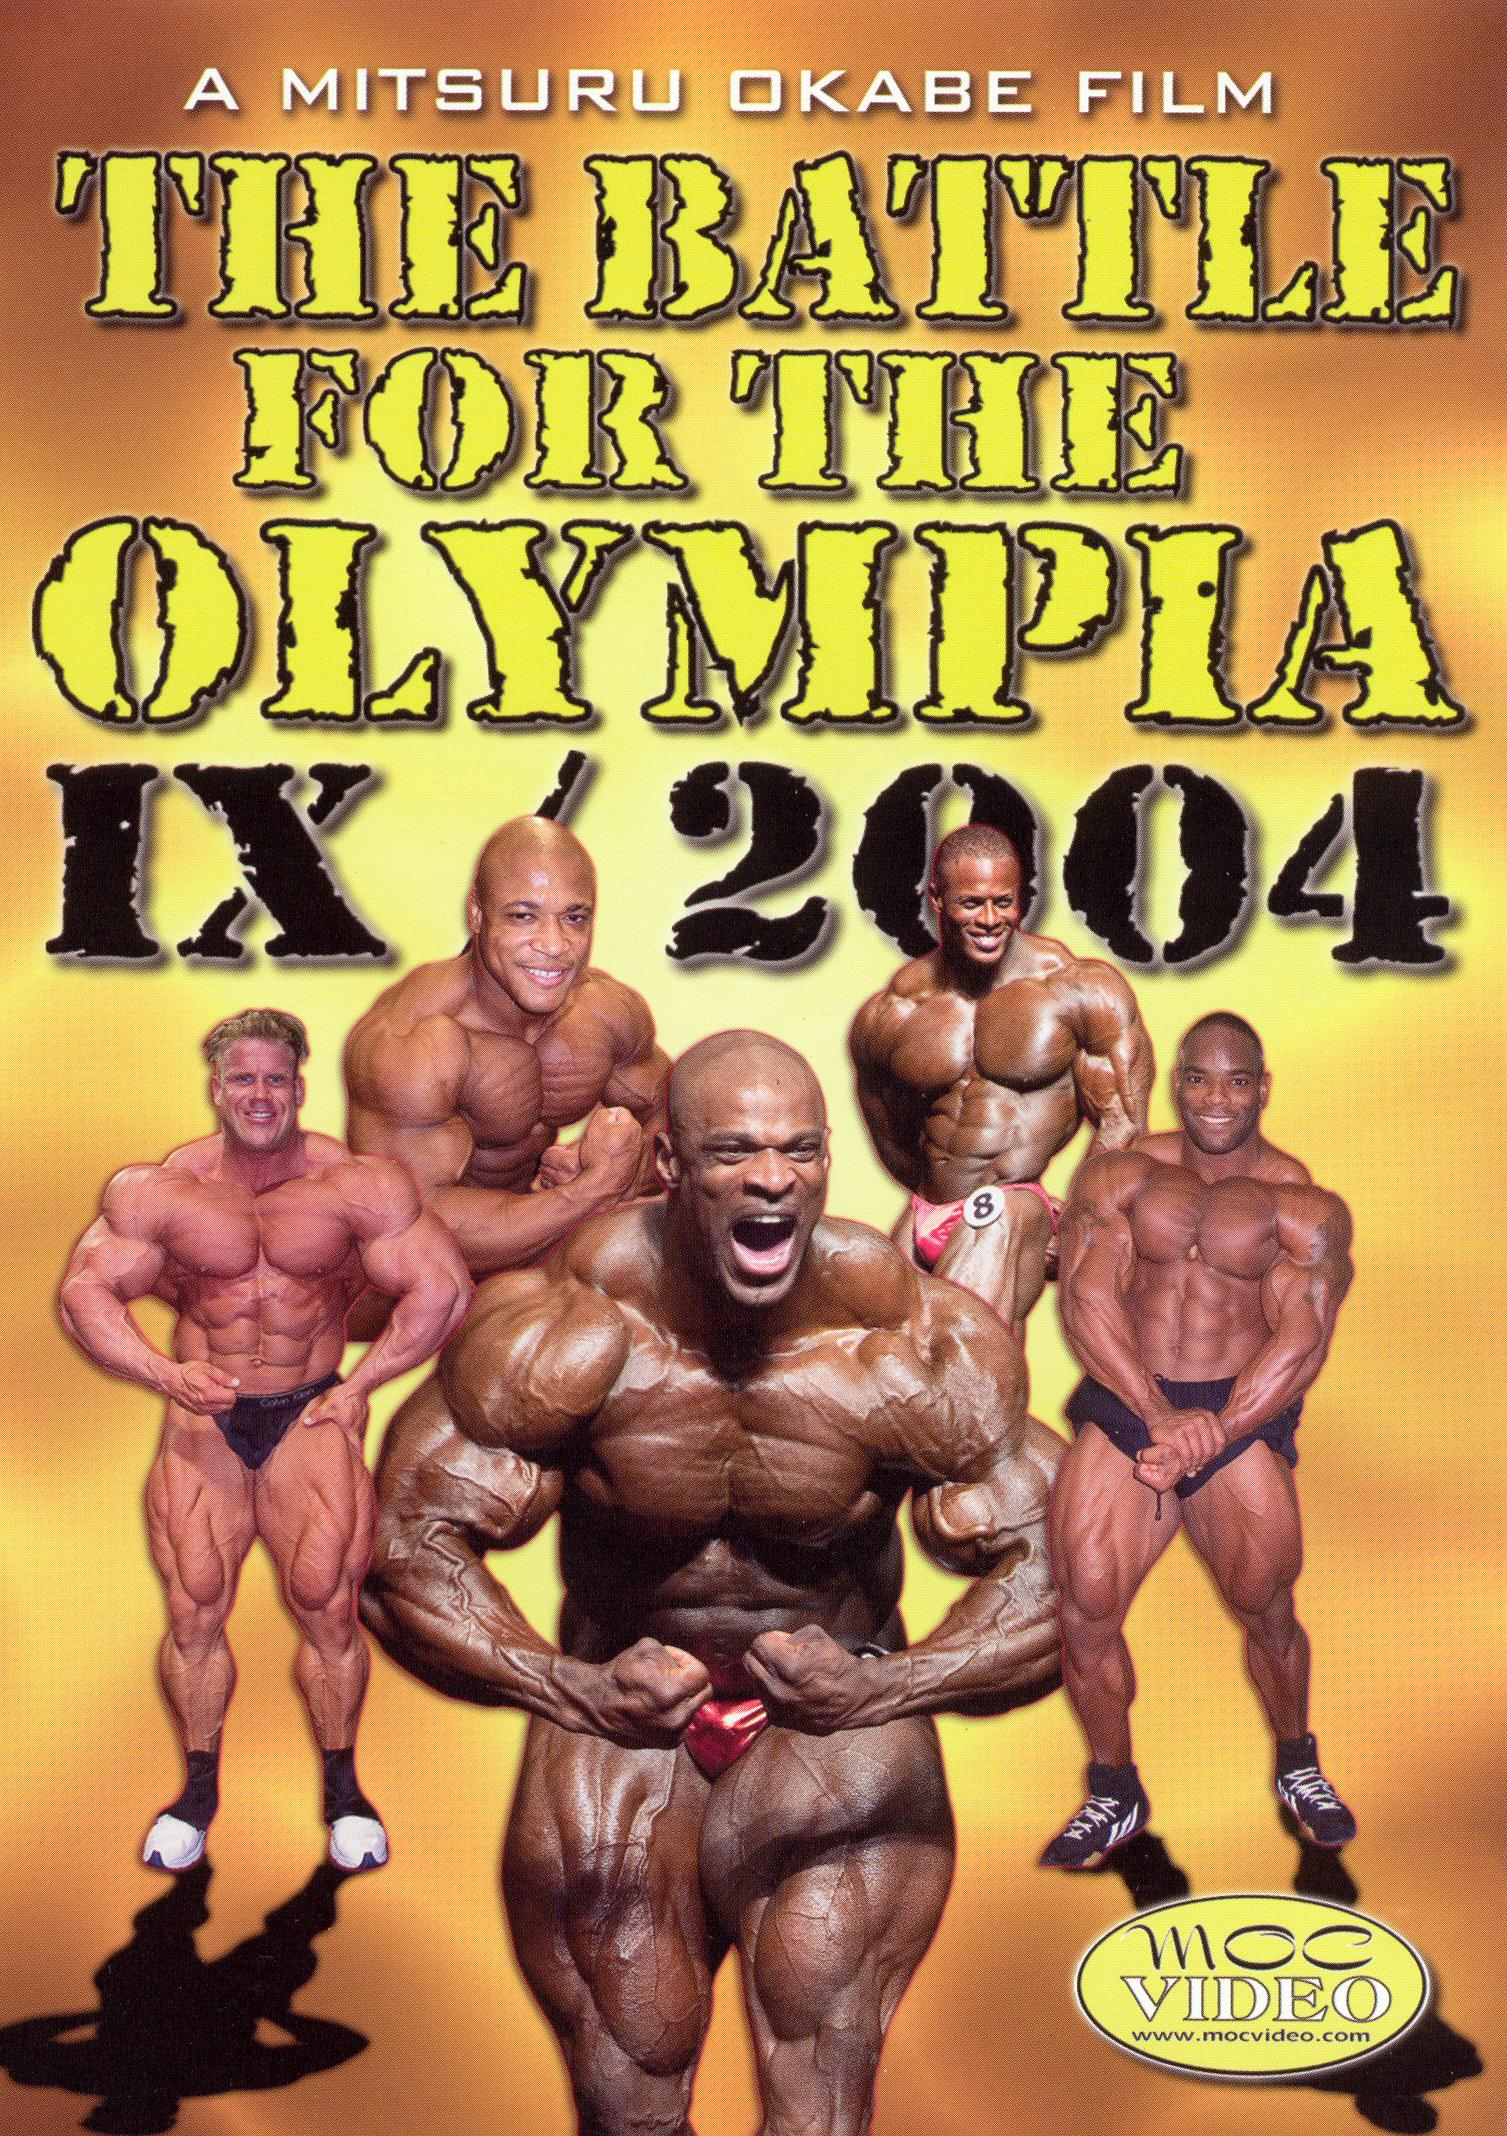 The Battle for the Olympia, Vol. IX - 2004